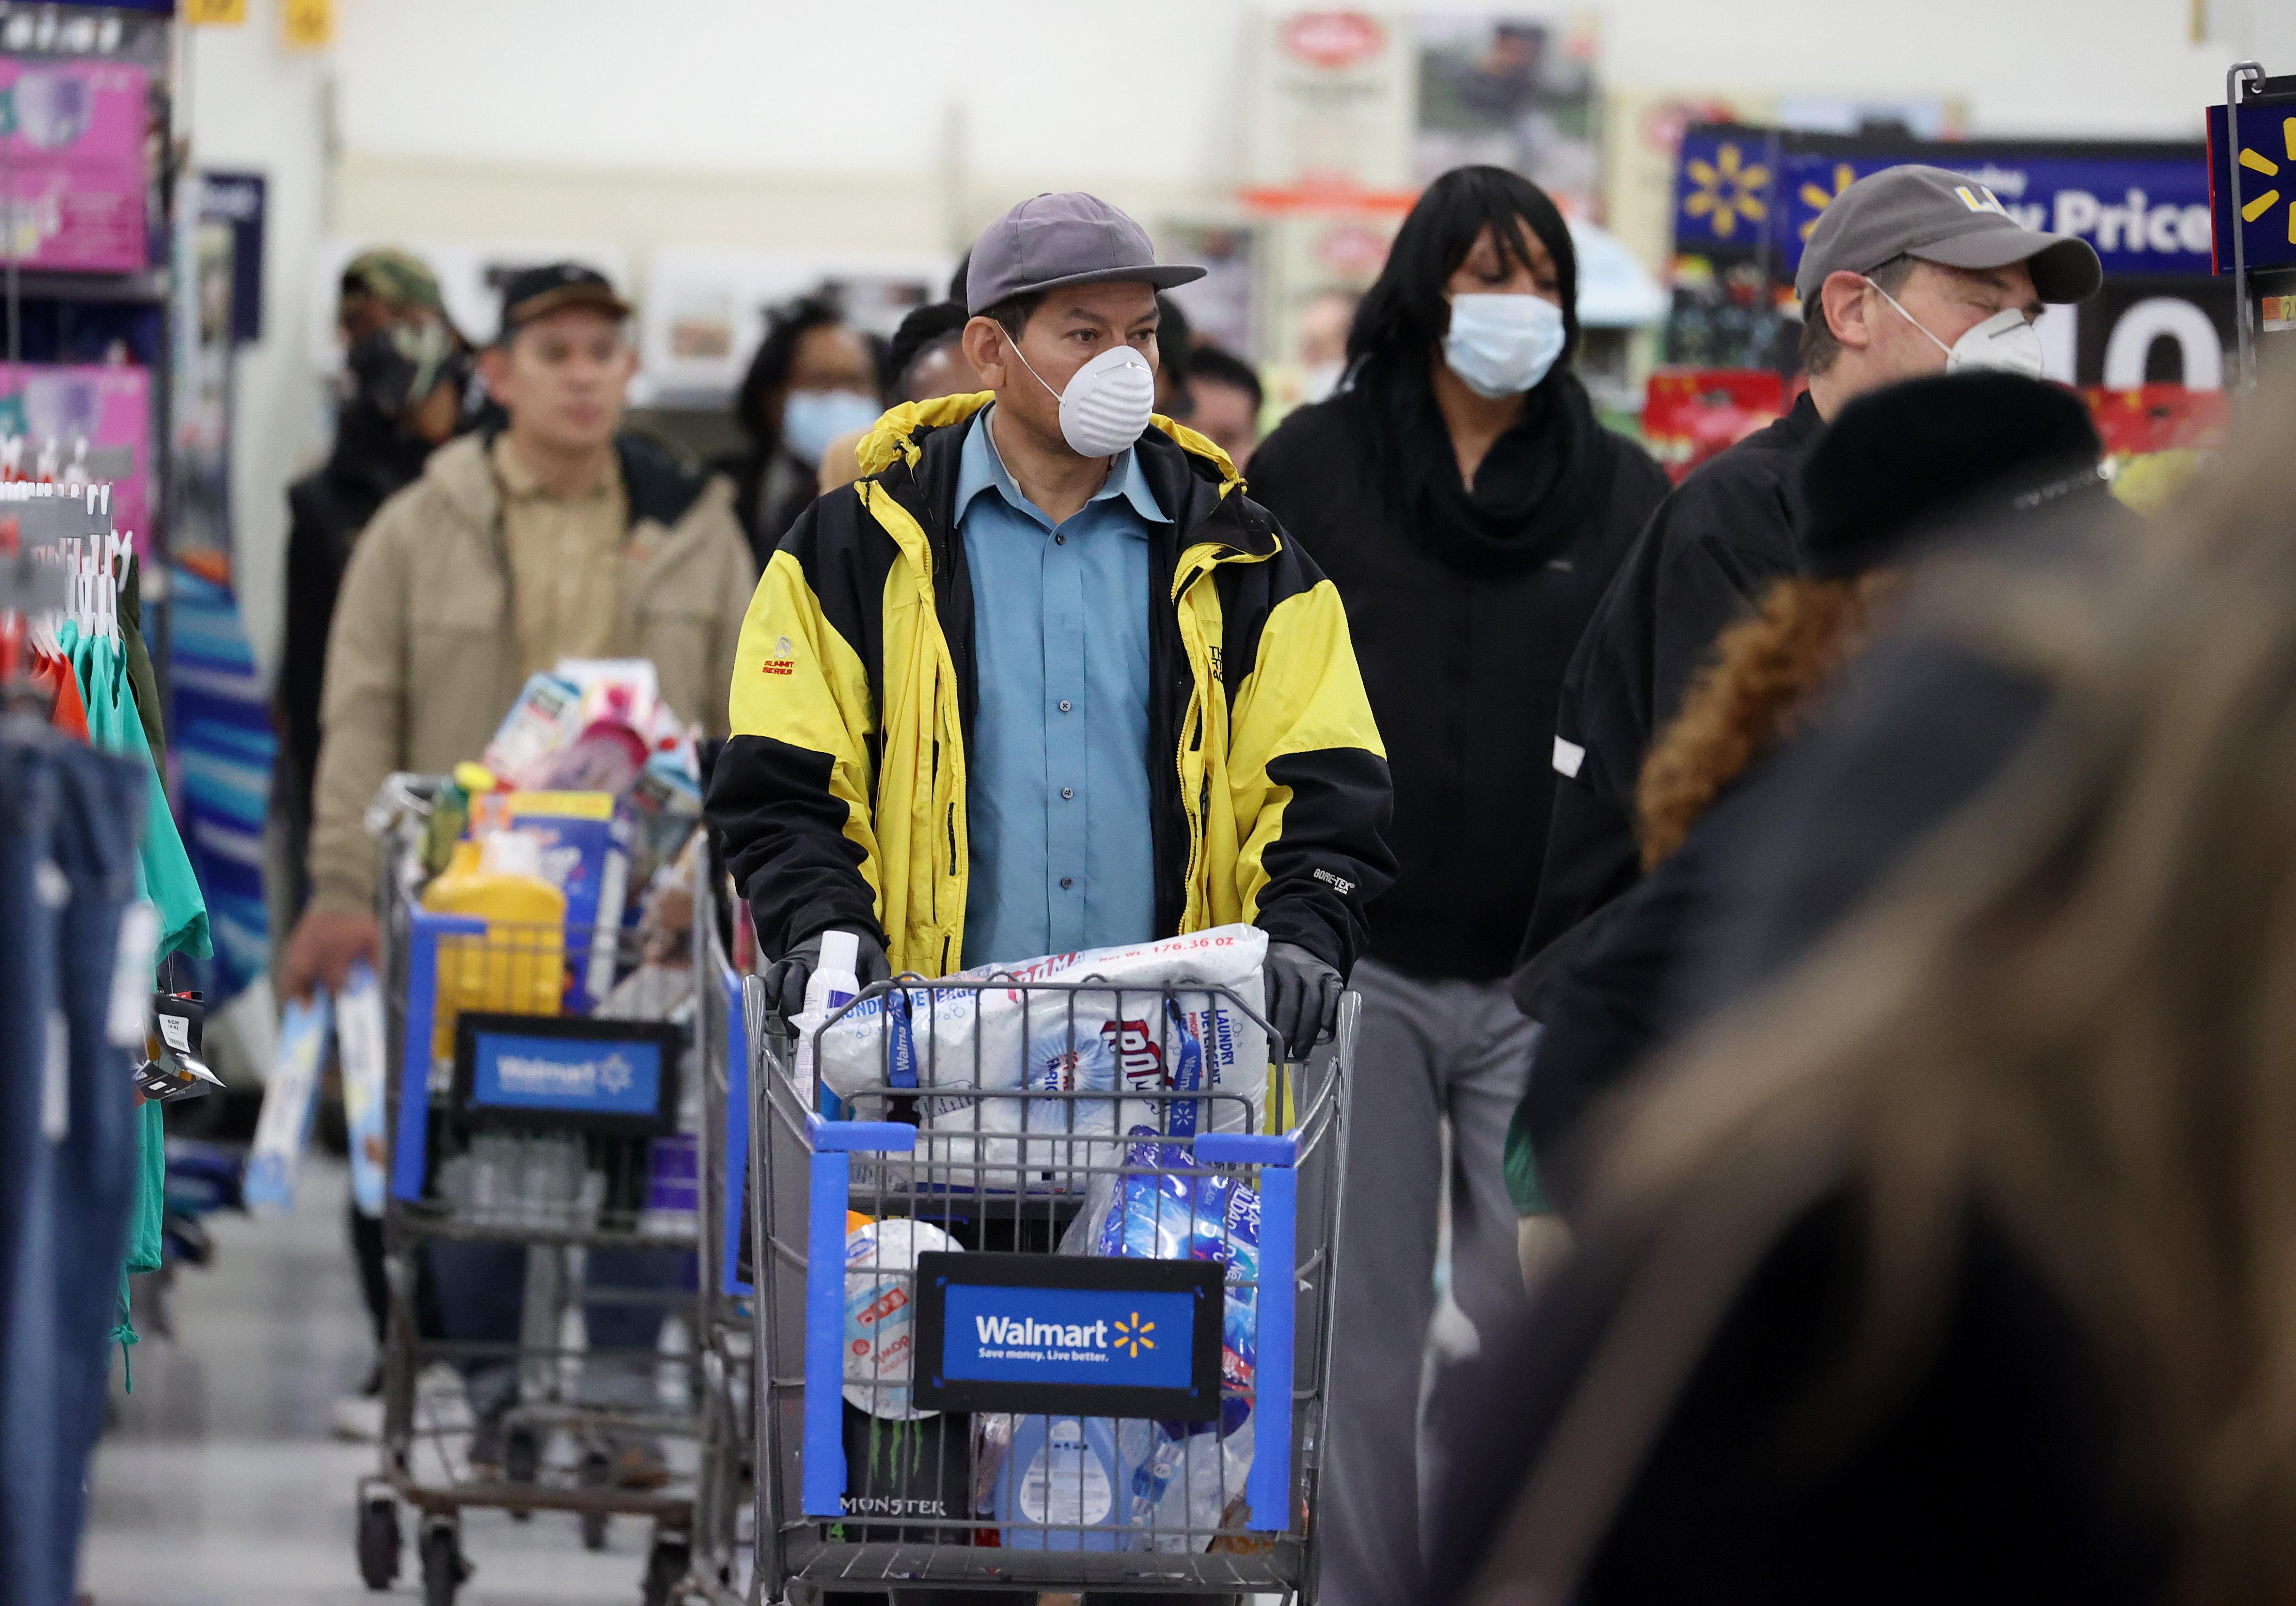 Walmart has been selling a lot of adult bicycles and sewing machines during the coronavirus pandemic